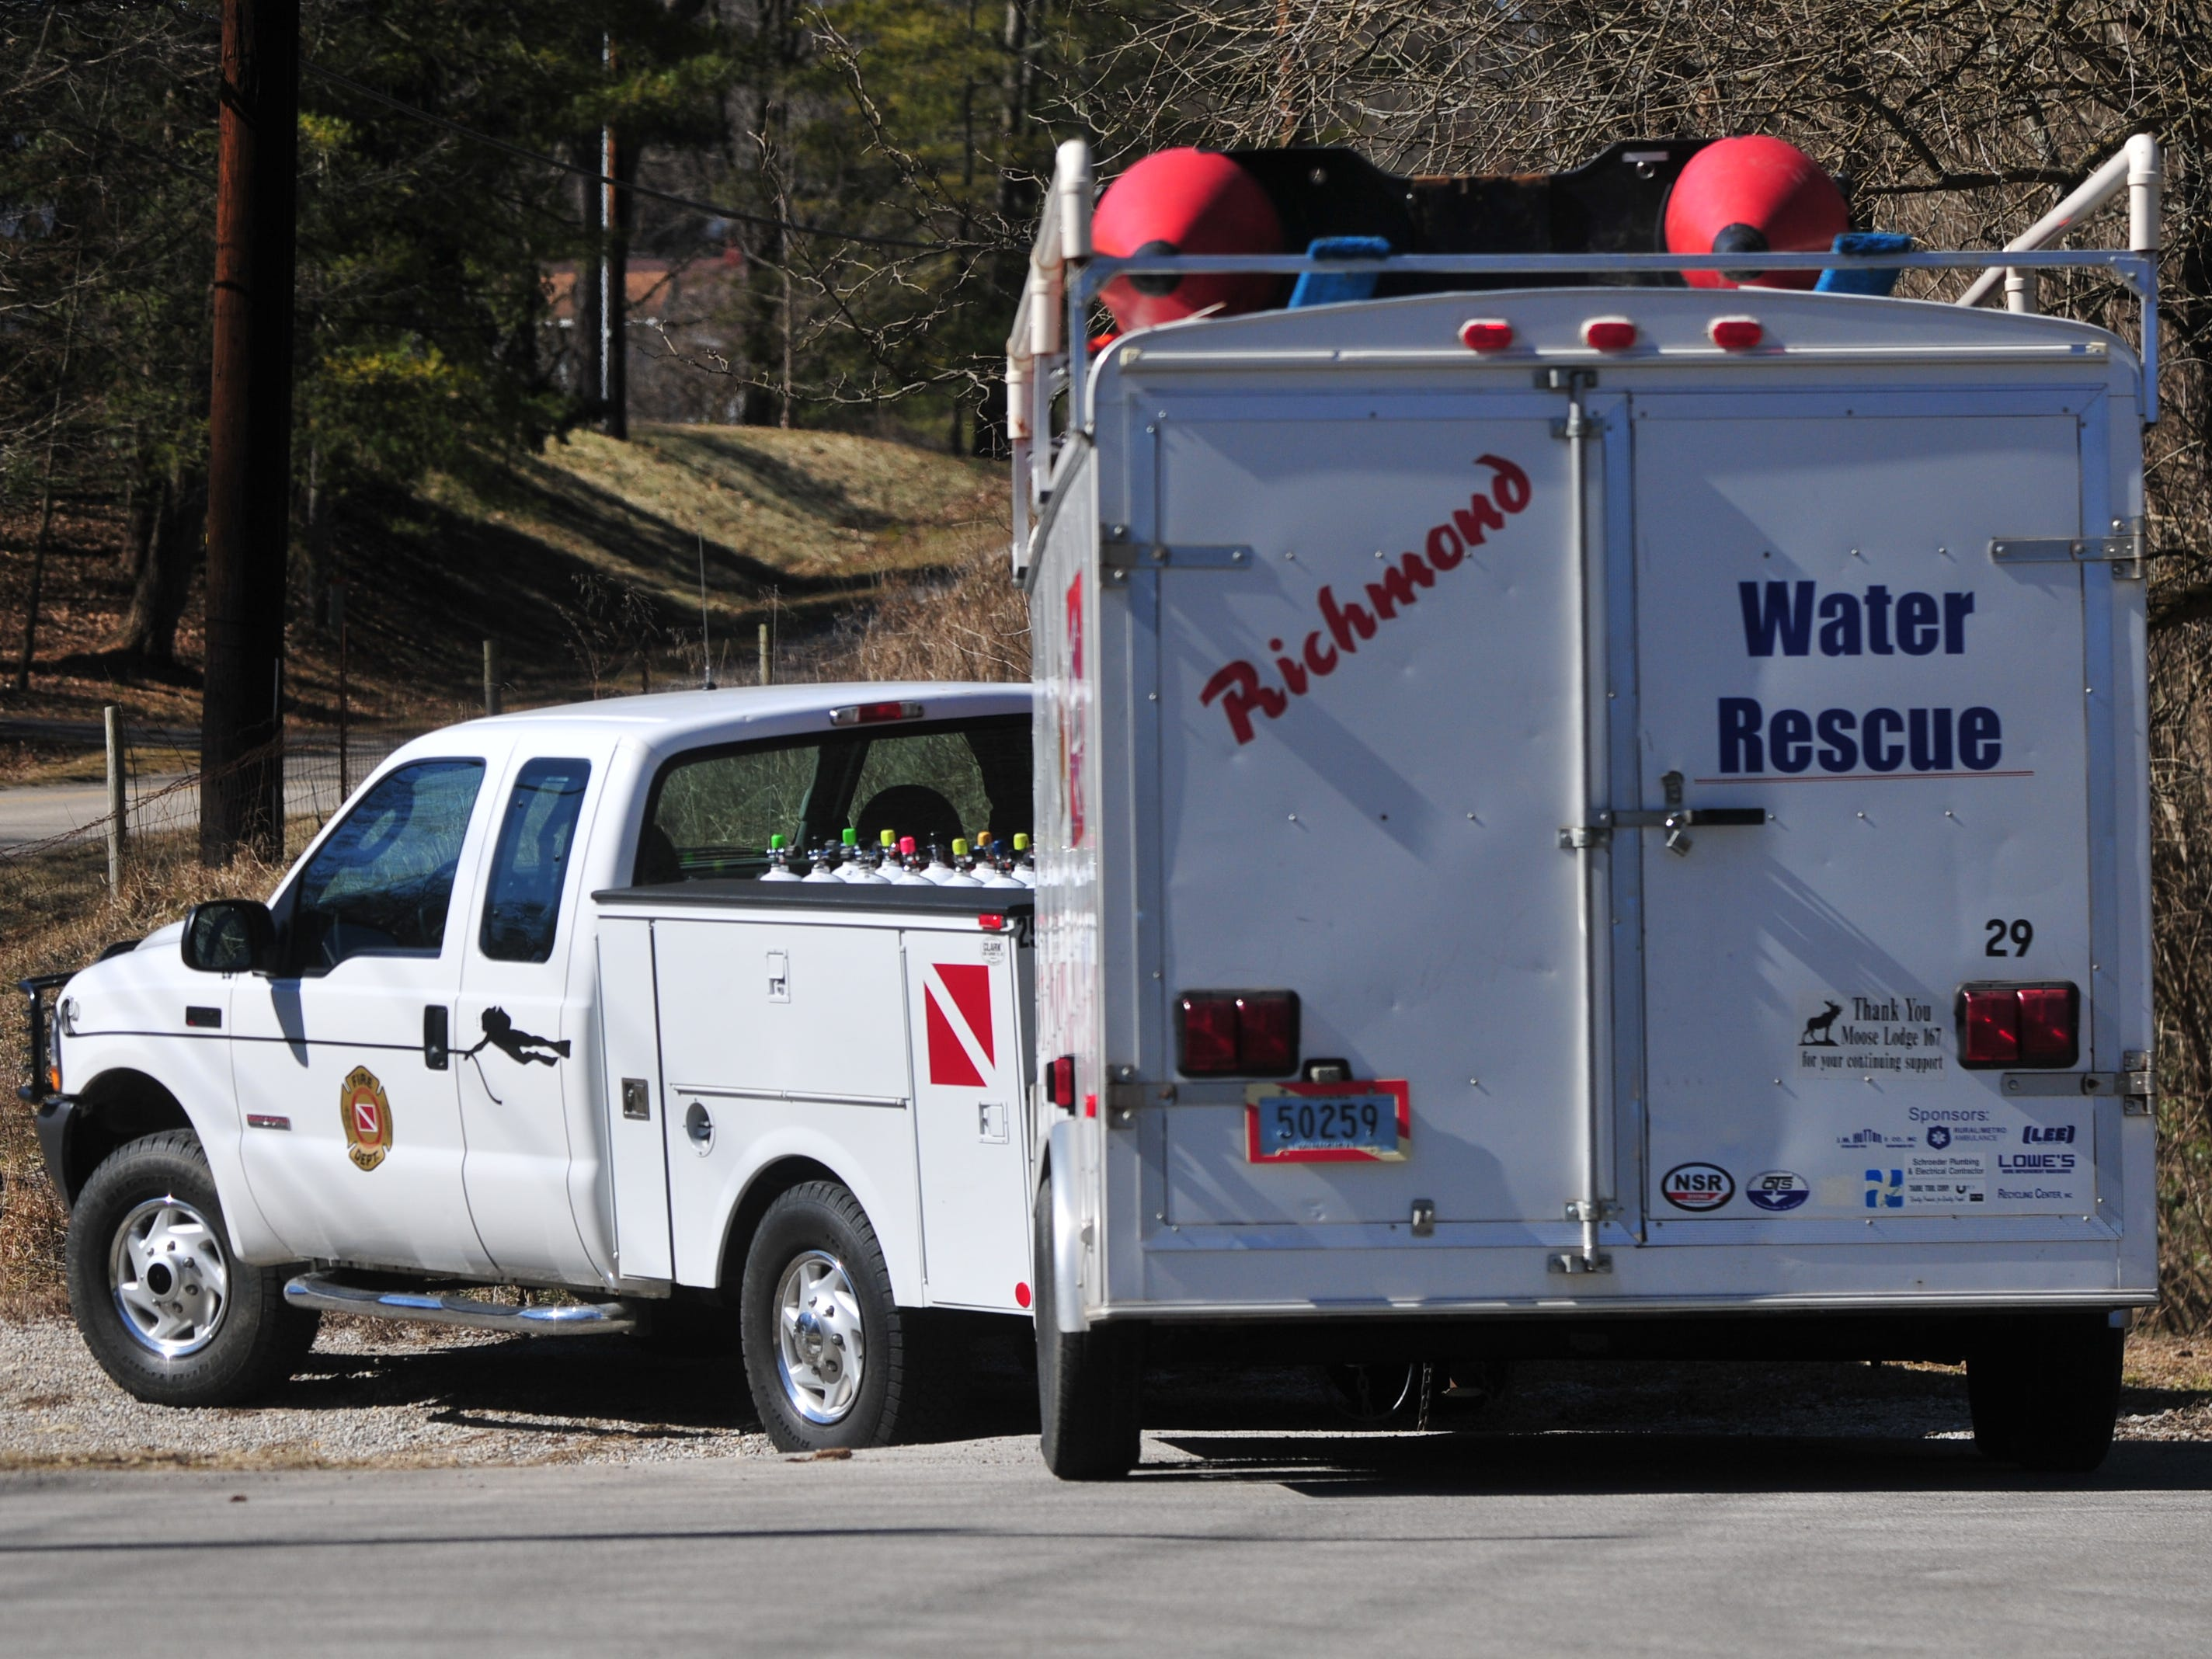 Richmond Fire Department's Water Rescue equipment was on scene at the Test Road trail head Monday afternoon during the search for Jake Huntington.